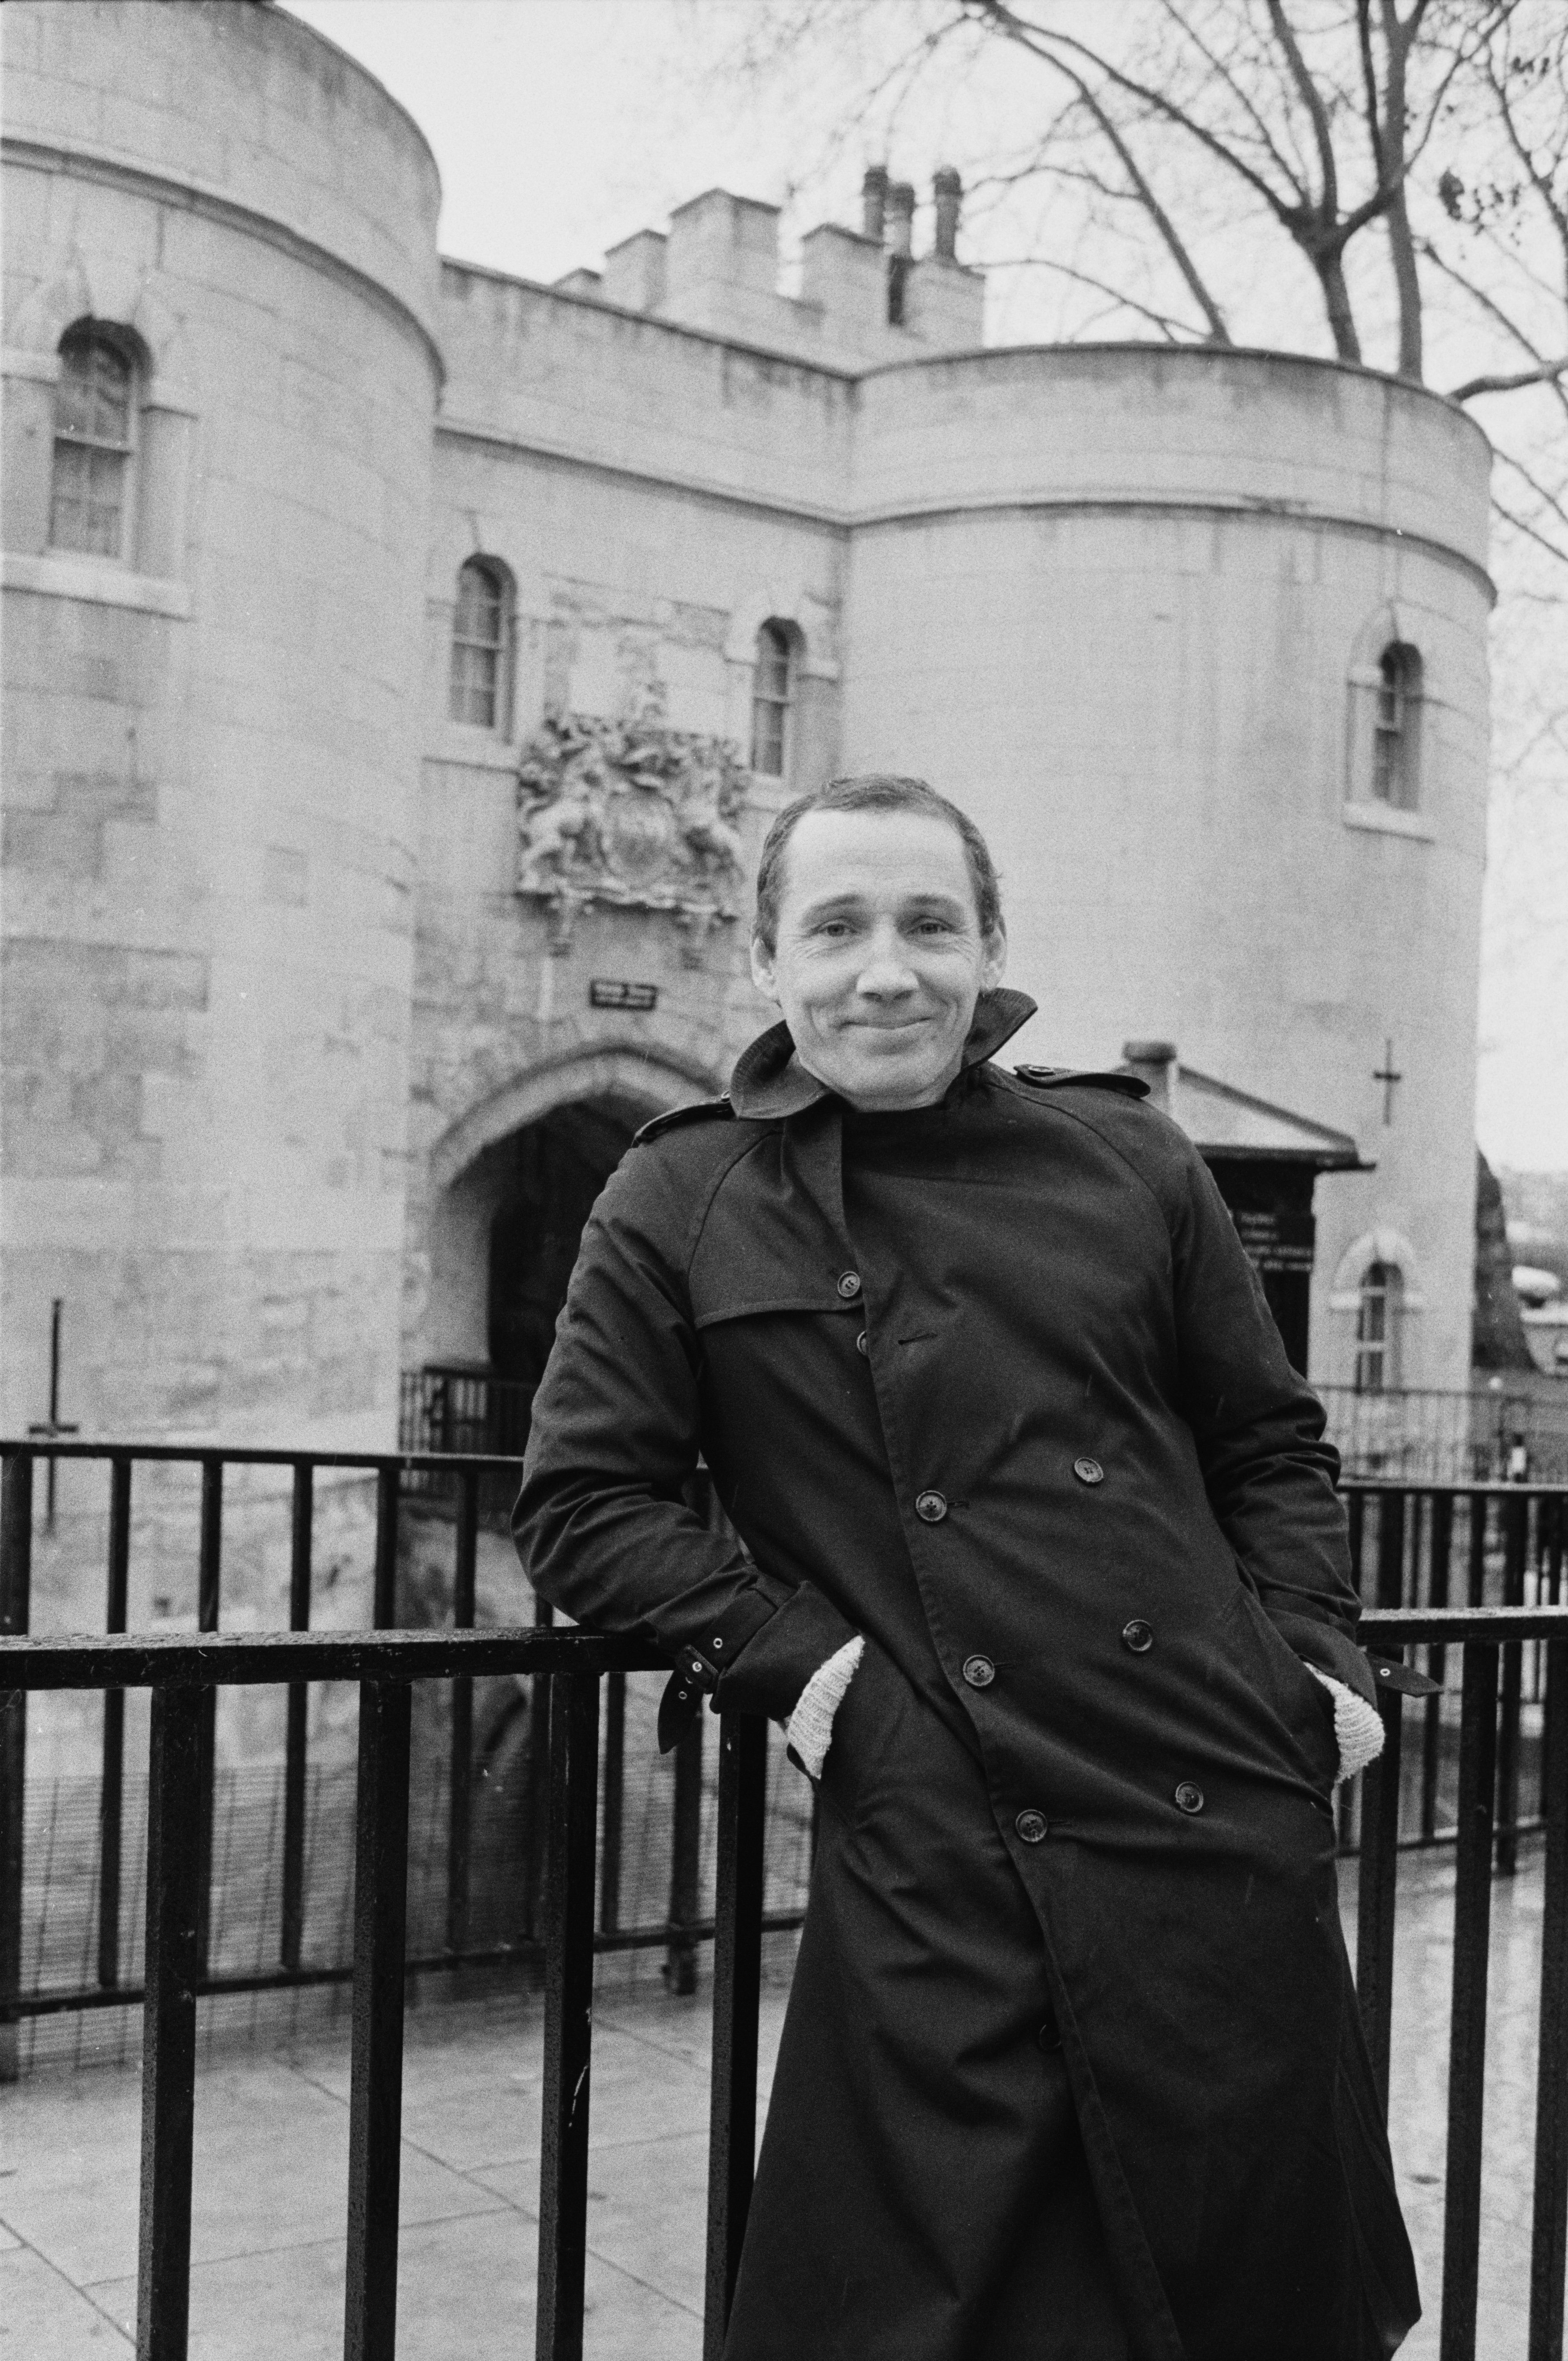 Michael Fagan, the intruder who gained access to the bedroom of Queen Elizabeth in Buckingham Palace in 1982, pictured at the Tower of London, UK, February 9, 1985 | Photo: Getty Images